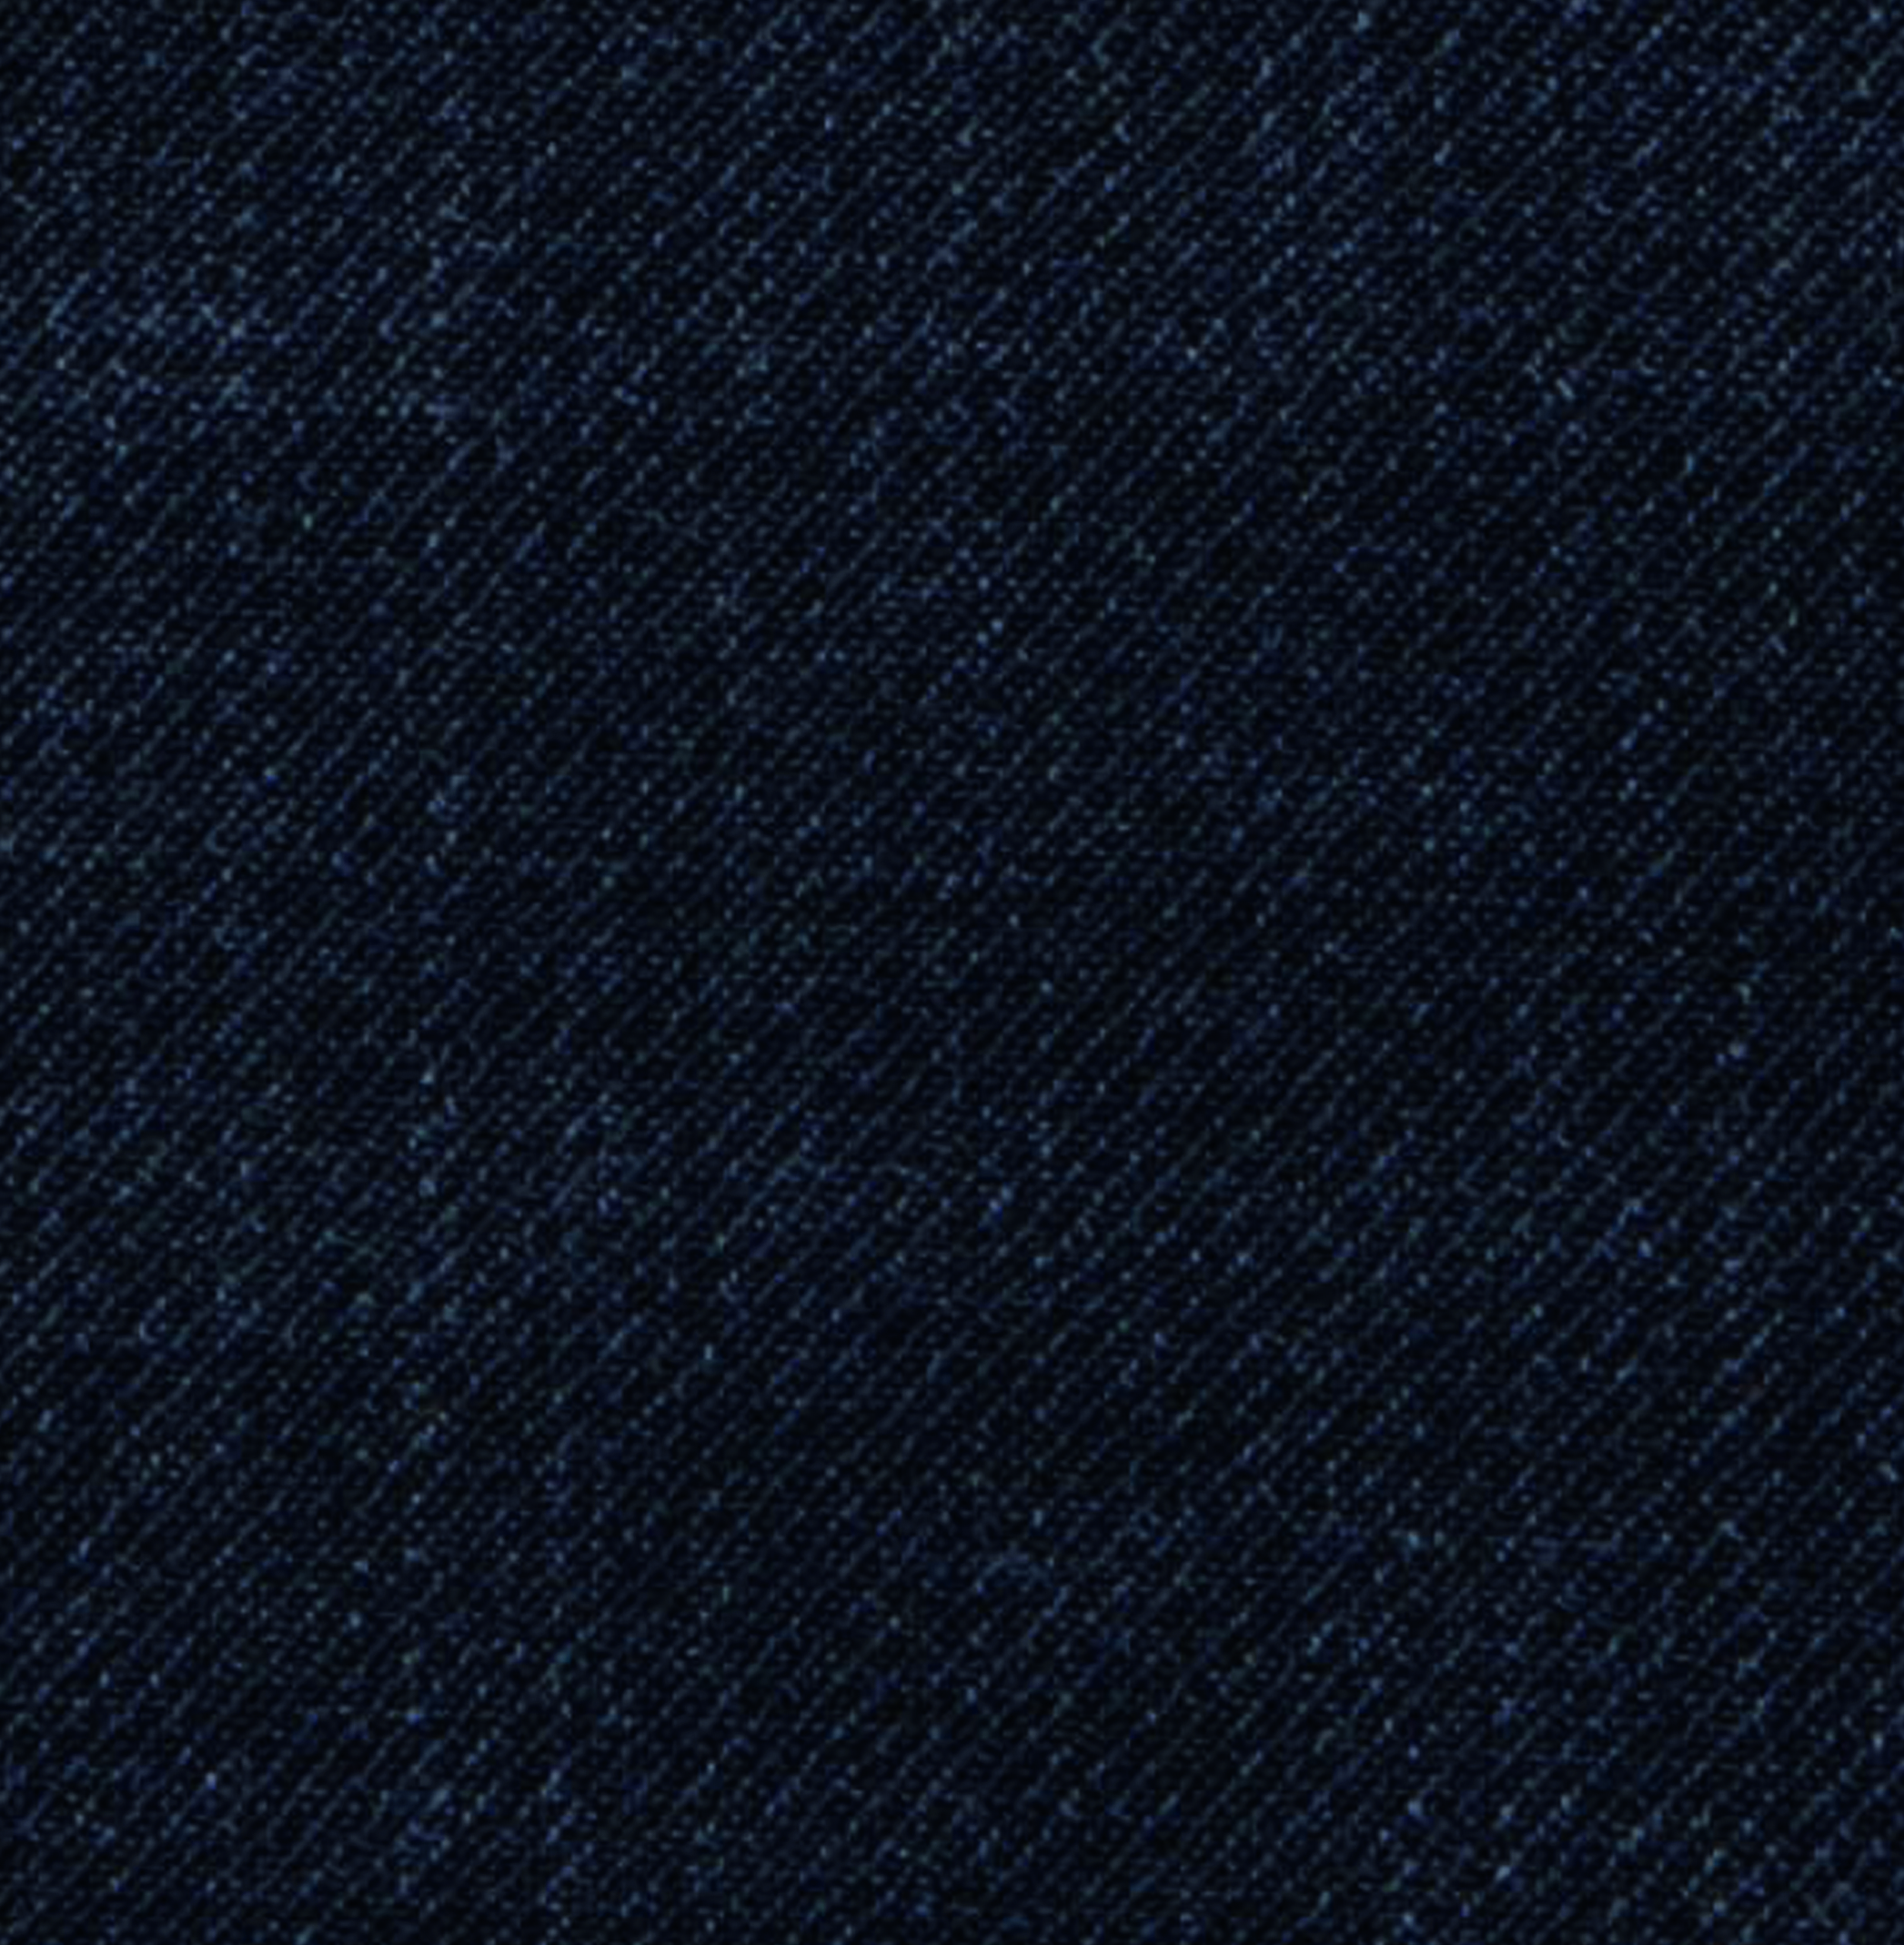 Buy tailor made shirts online - Easy Care Wool Mix - Charcoal with lining